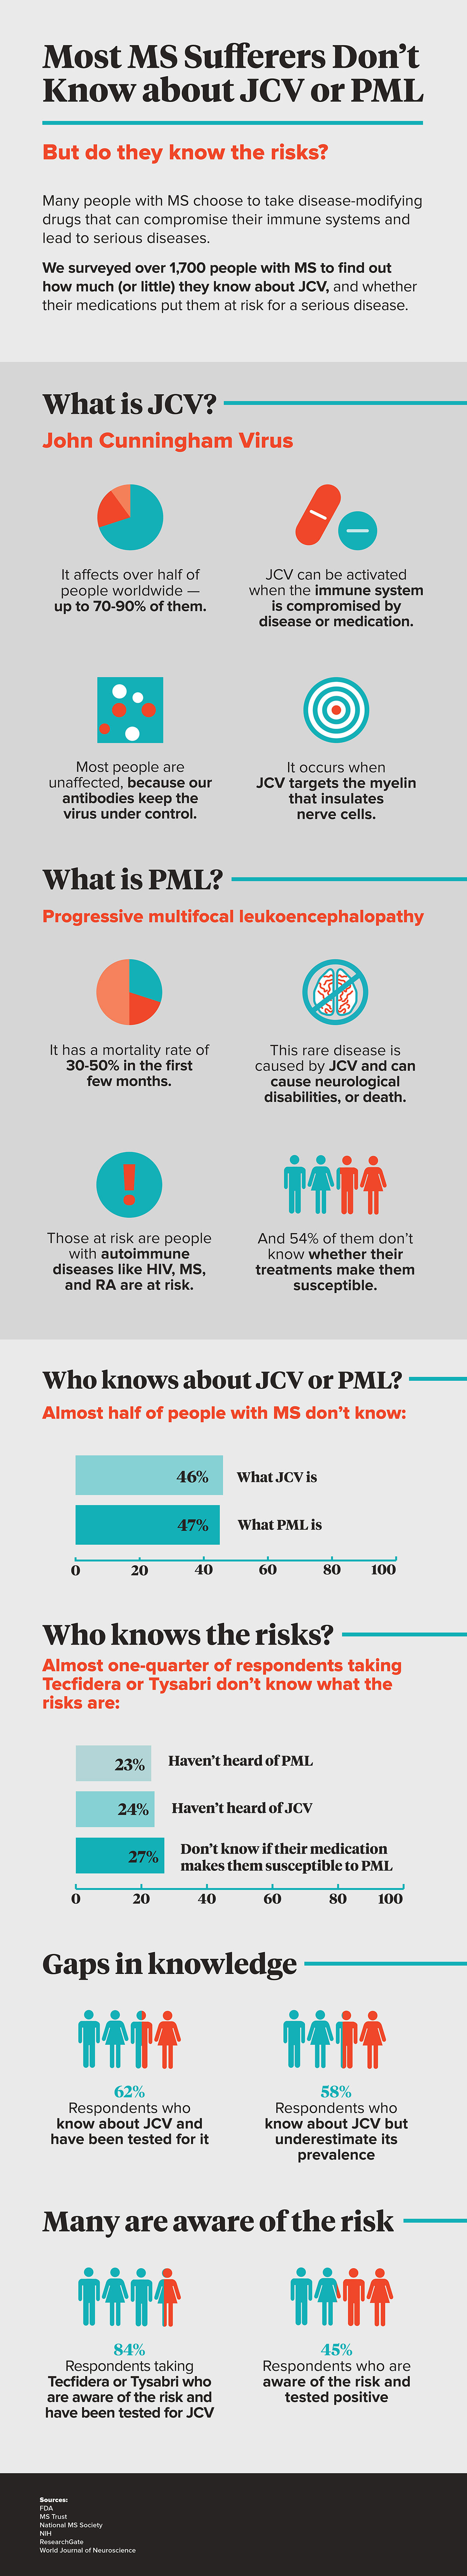 Awareness of JCV and PML Lags Among MS Patients